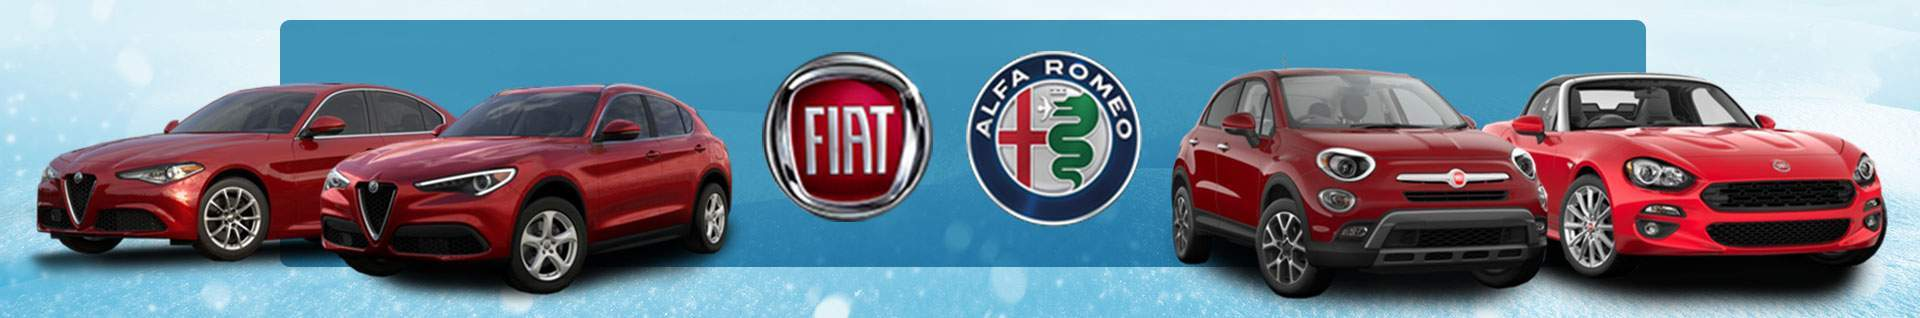 Fiat and Alfa Romeo